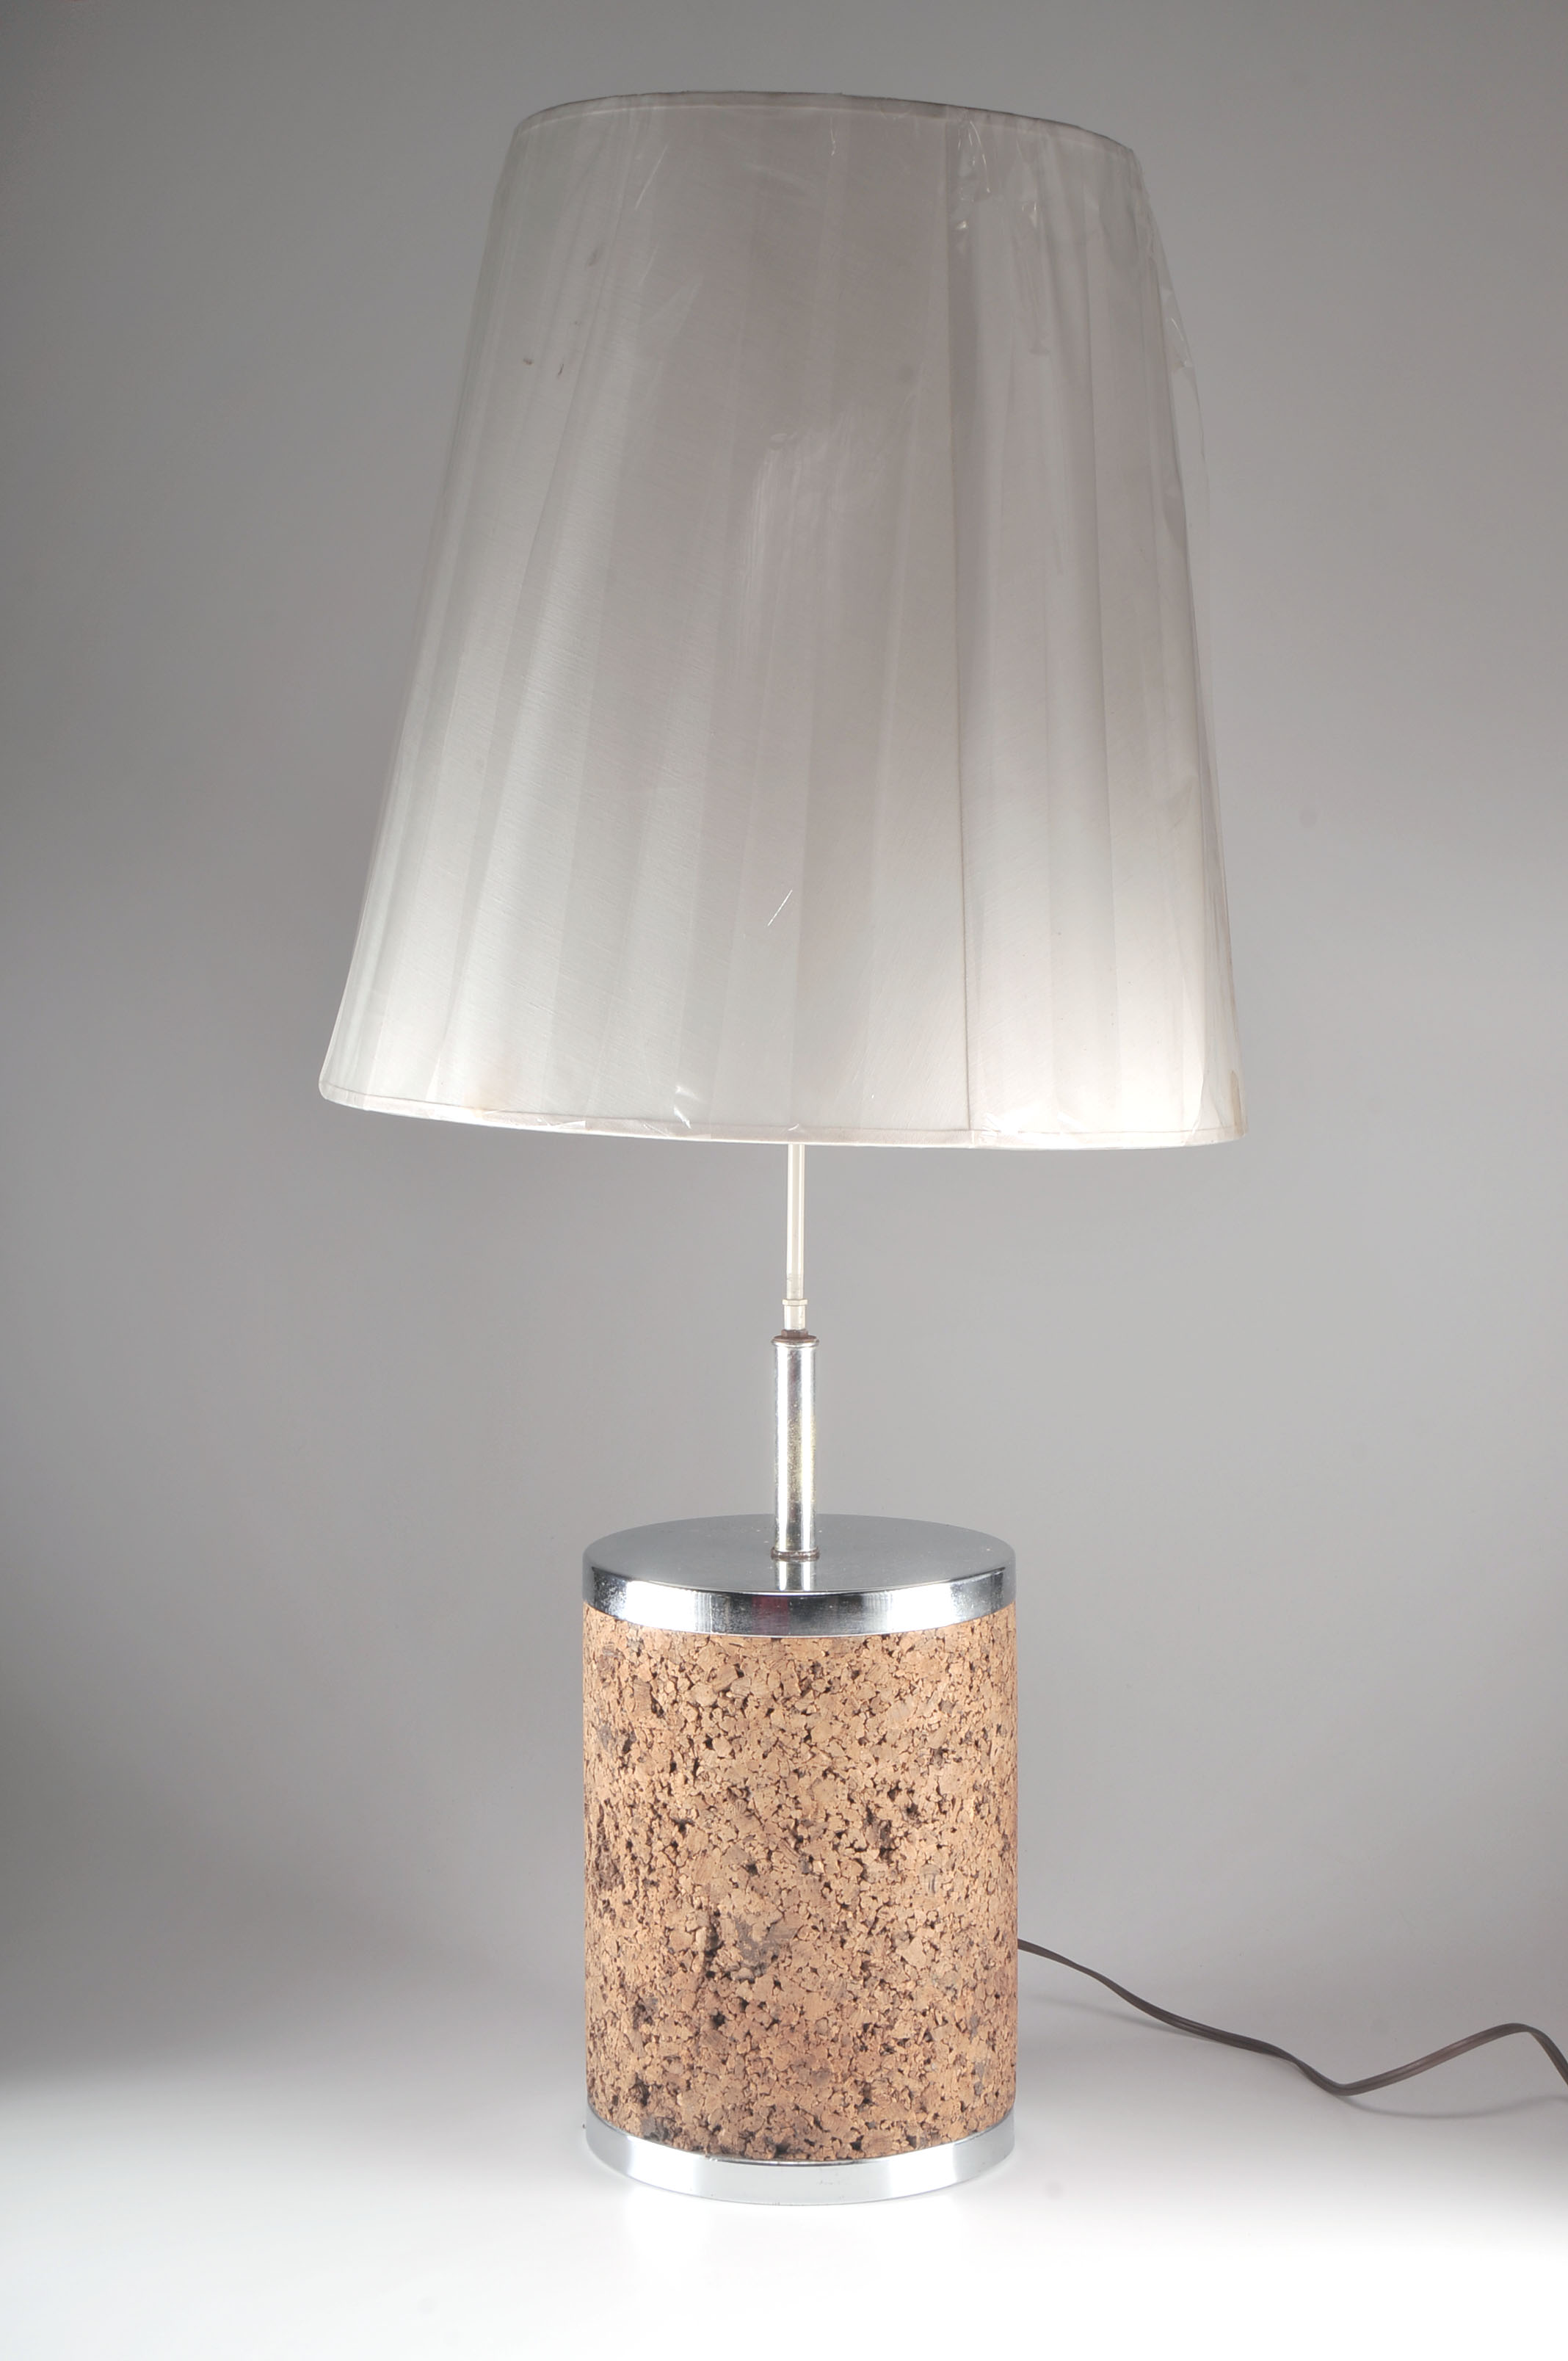 Antique Floor Lamps Table Lamps and Light Fixtures Auction in EBTH